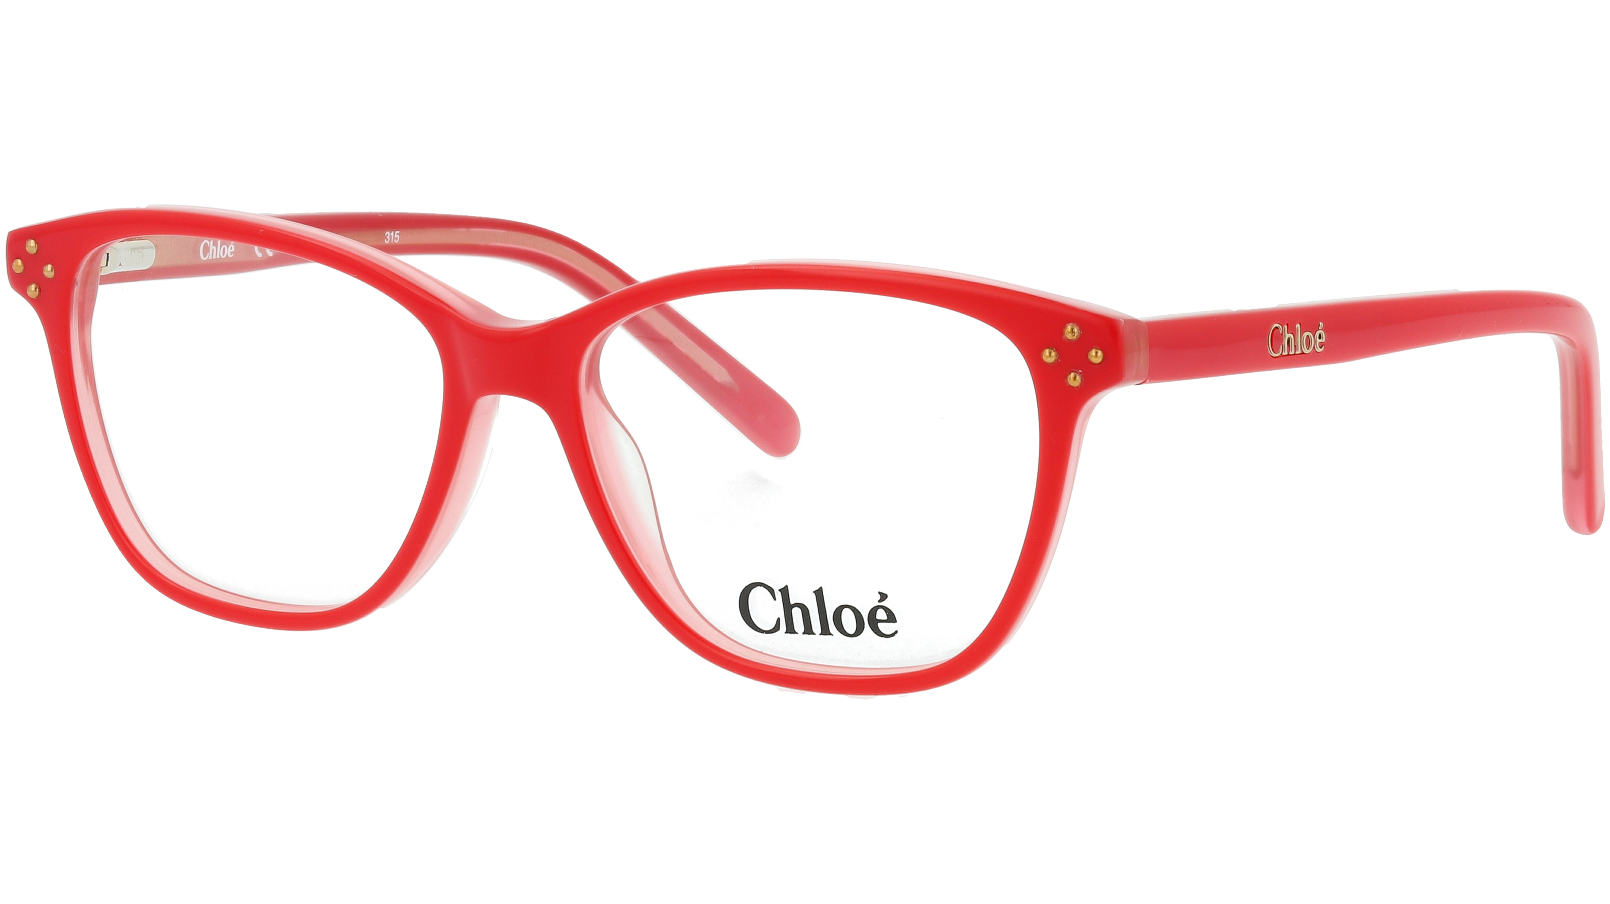 CHLOE CE3601 532 47 RED Glasses